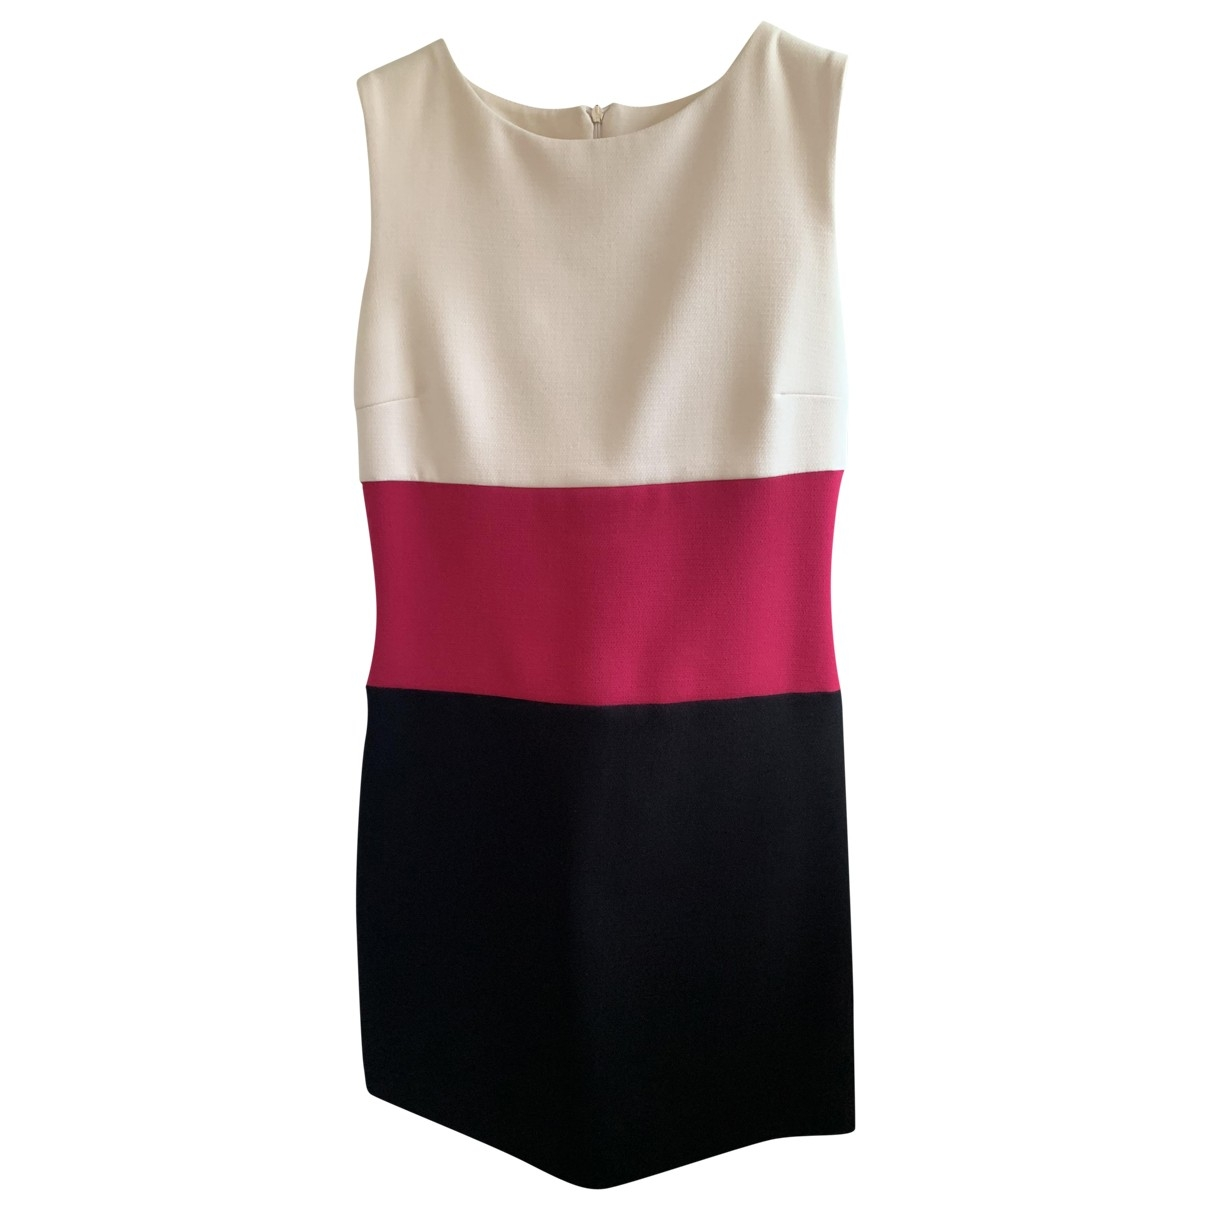 Non Signé / Unsigned \N dress for Women S International